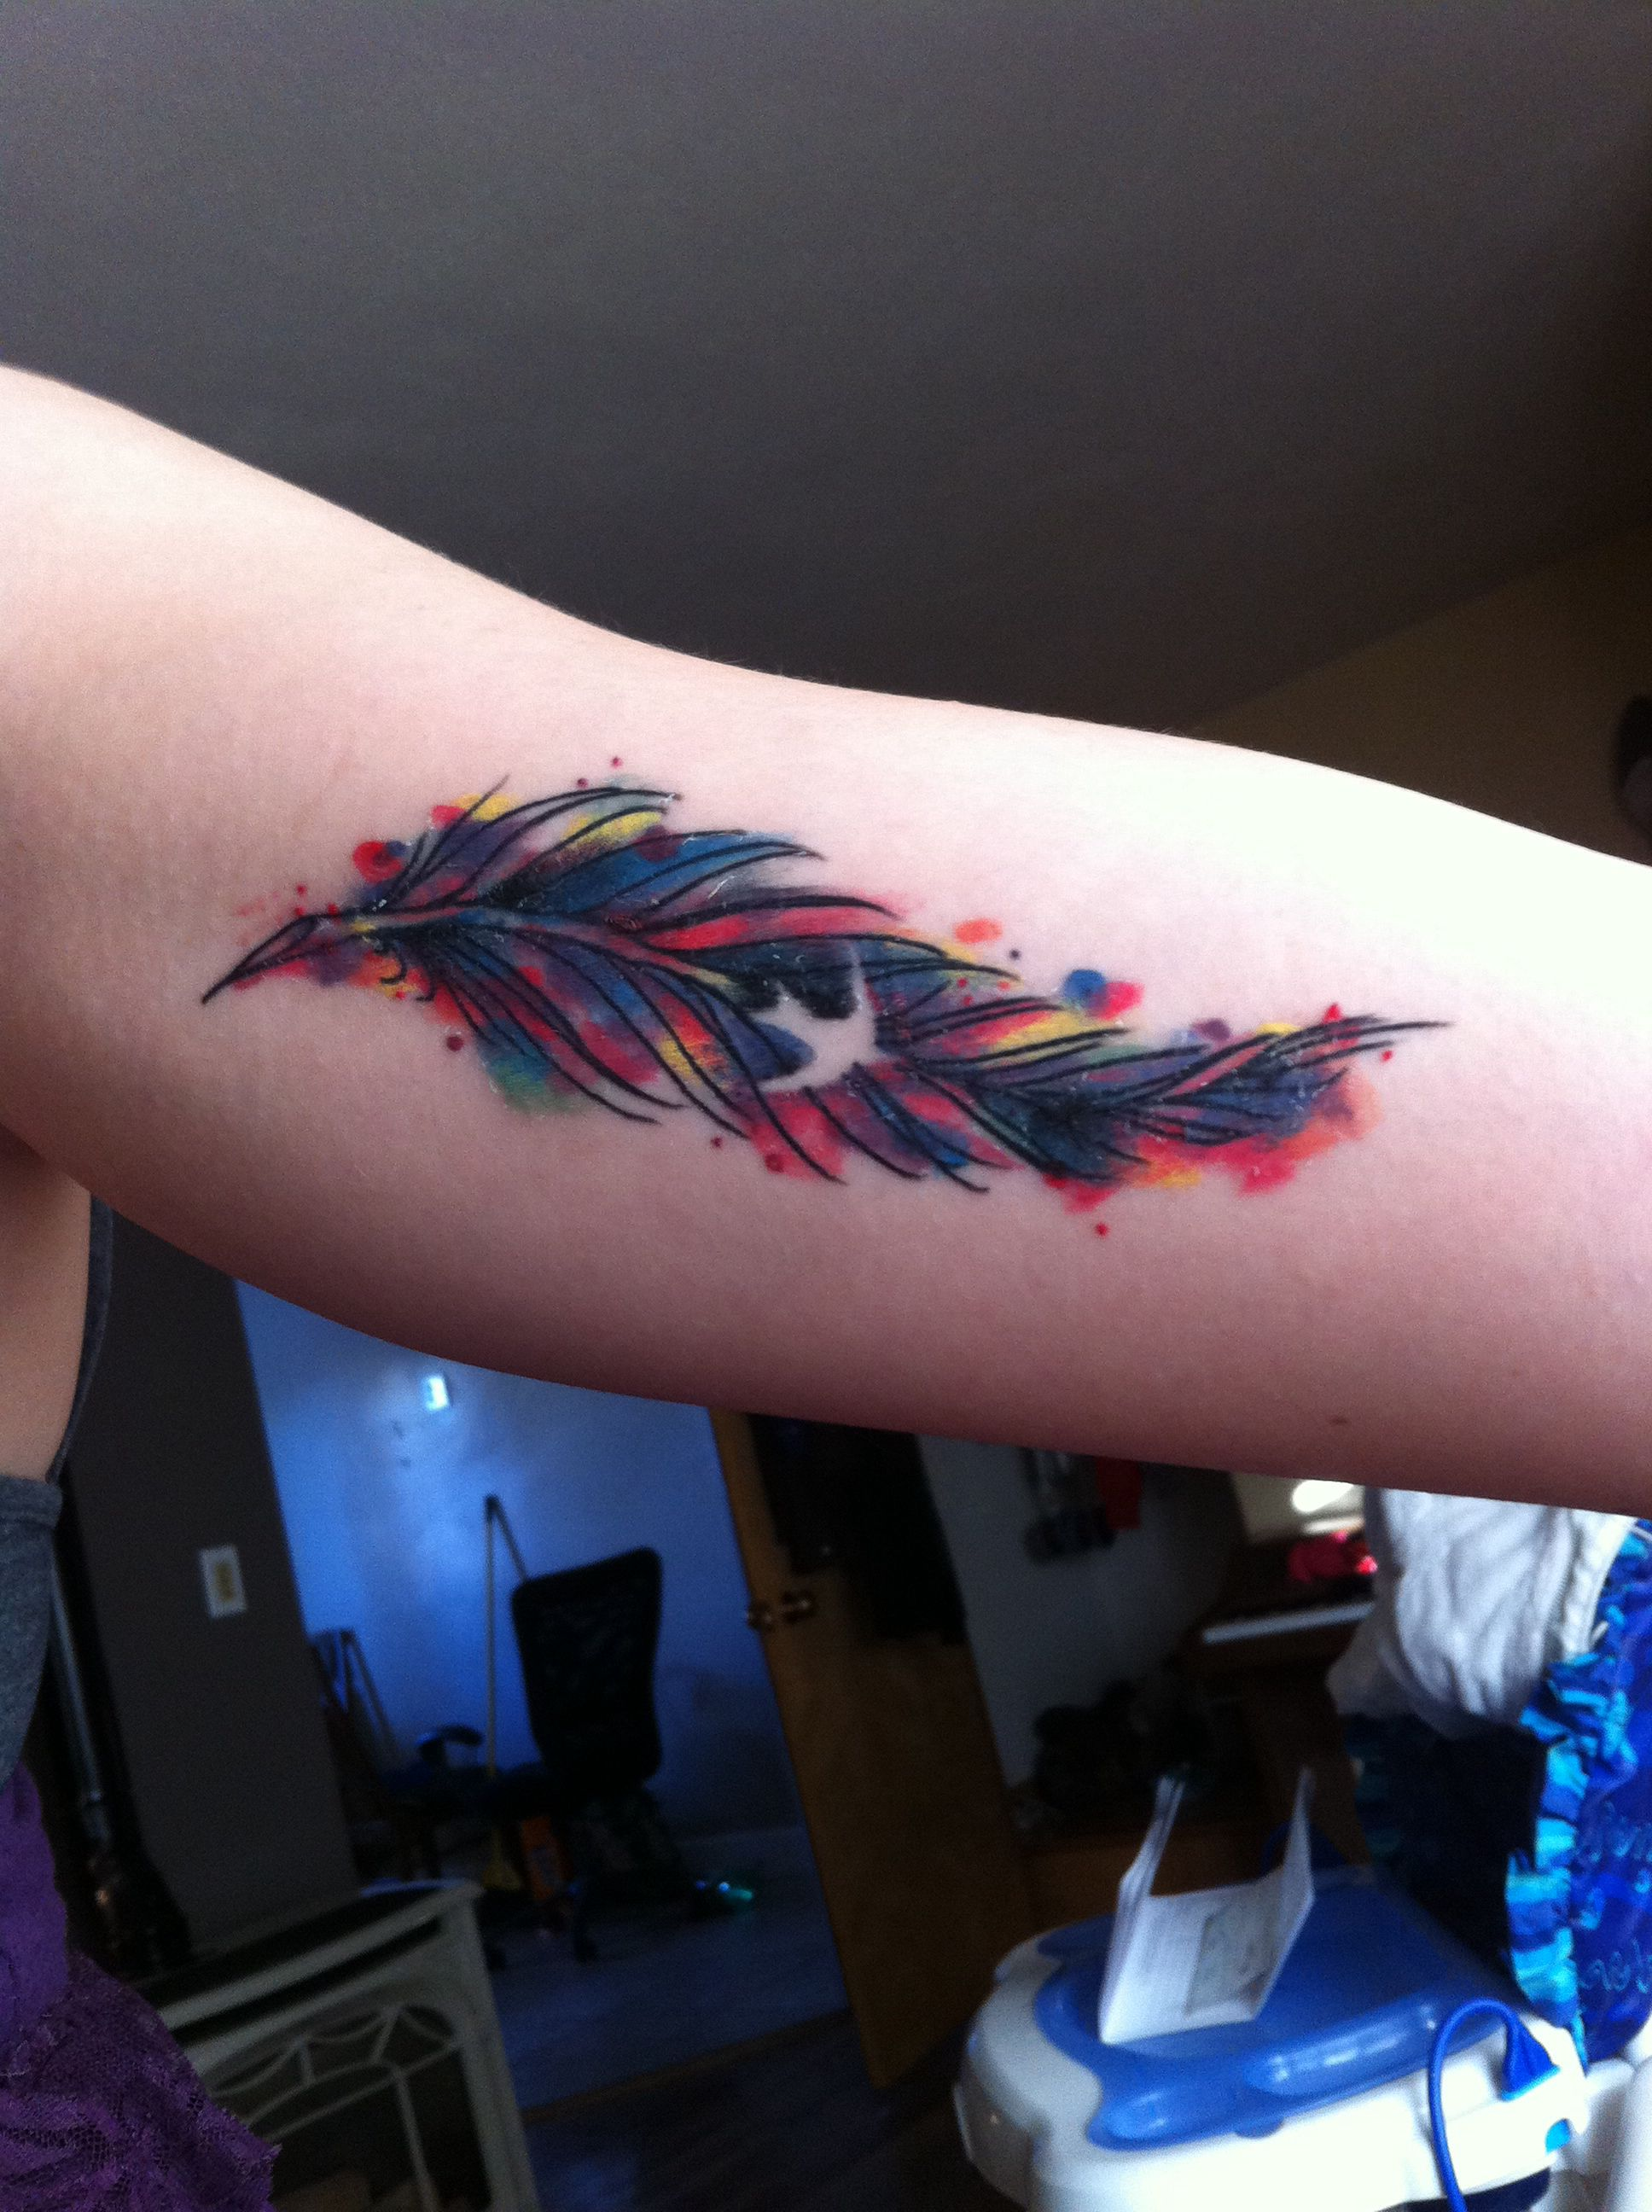 Watercolor feather tattoo my roommate got!